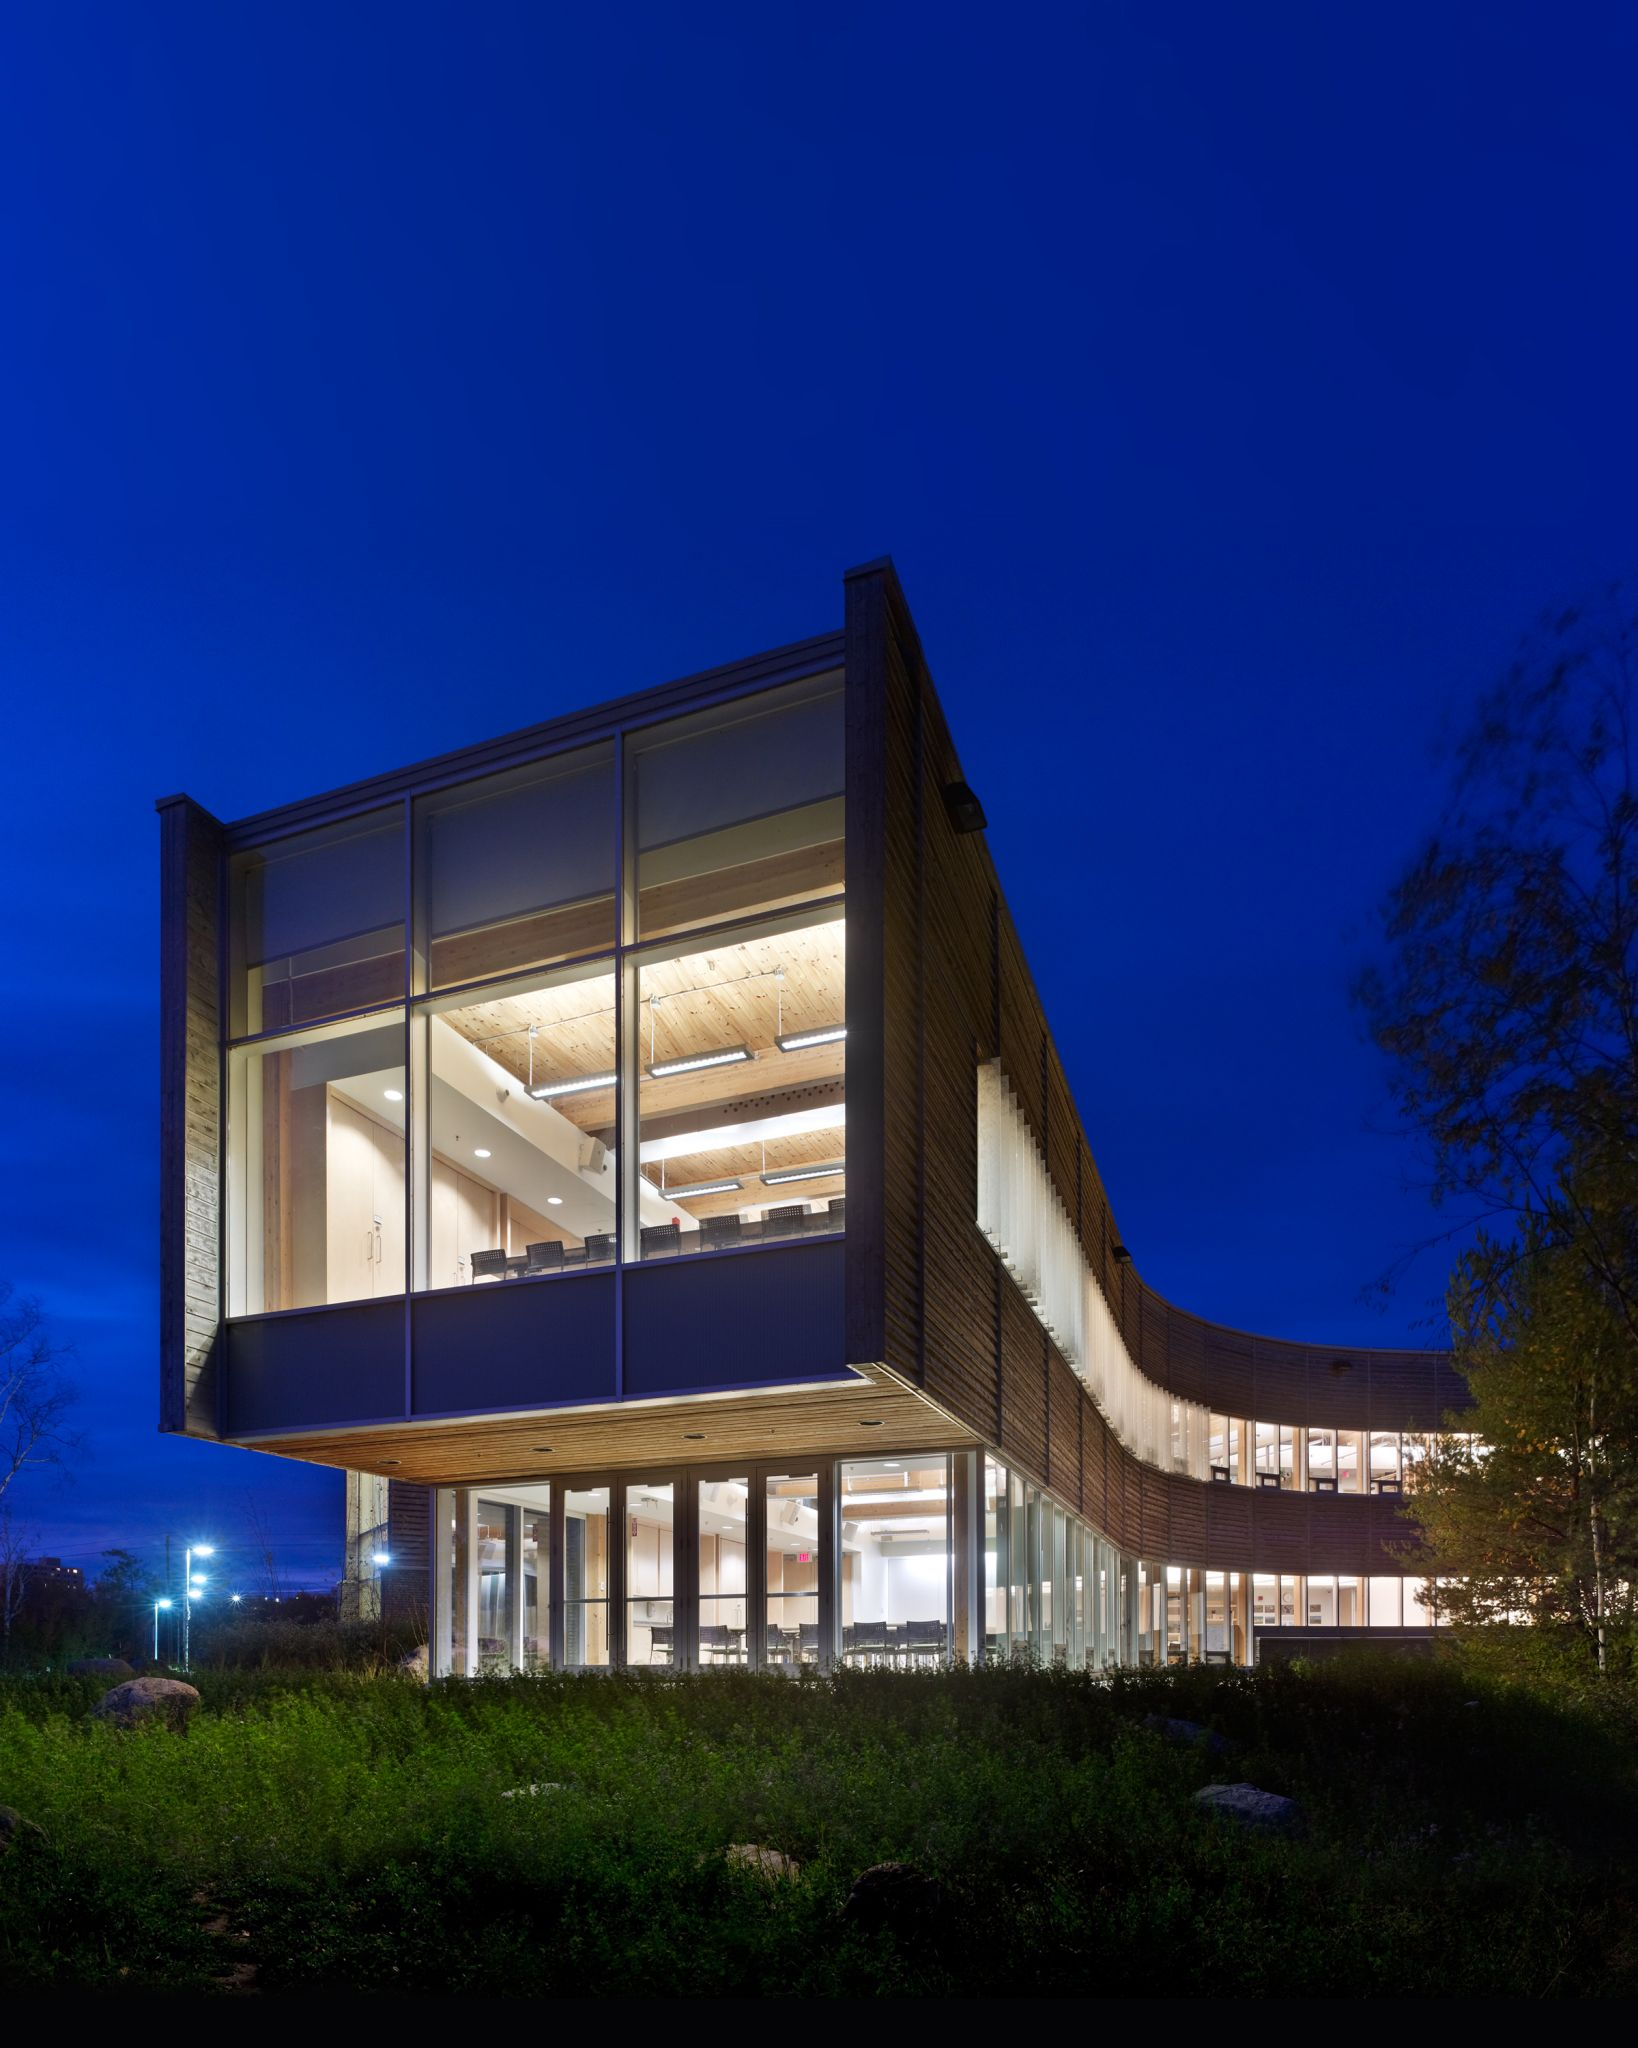 winners of ontario architecture awards announced construction canada